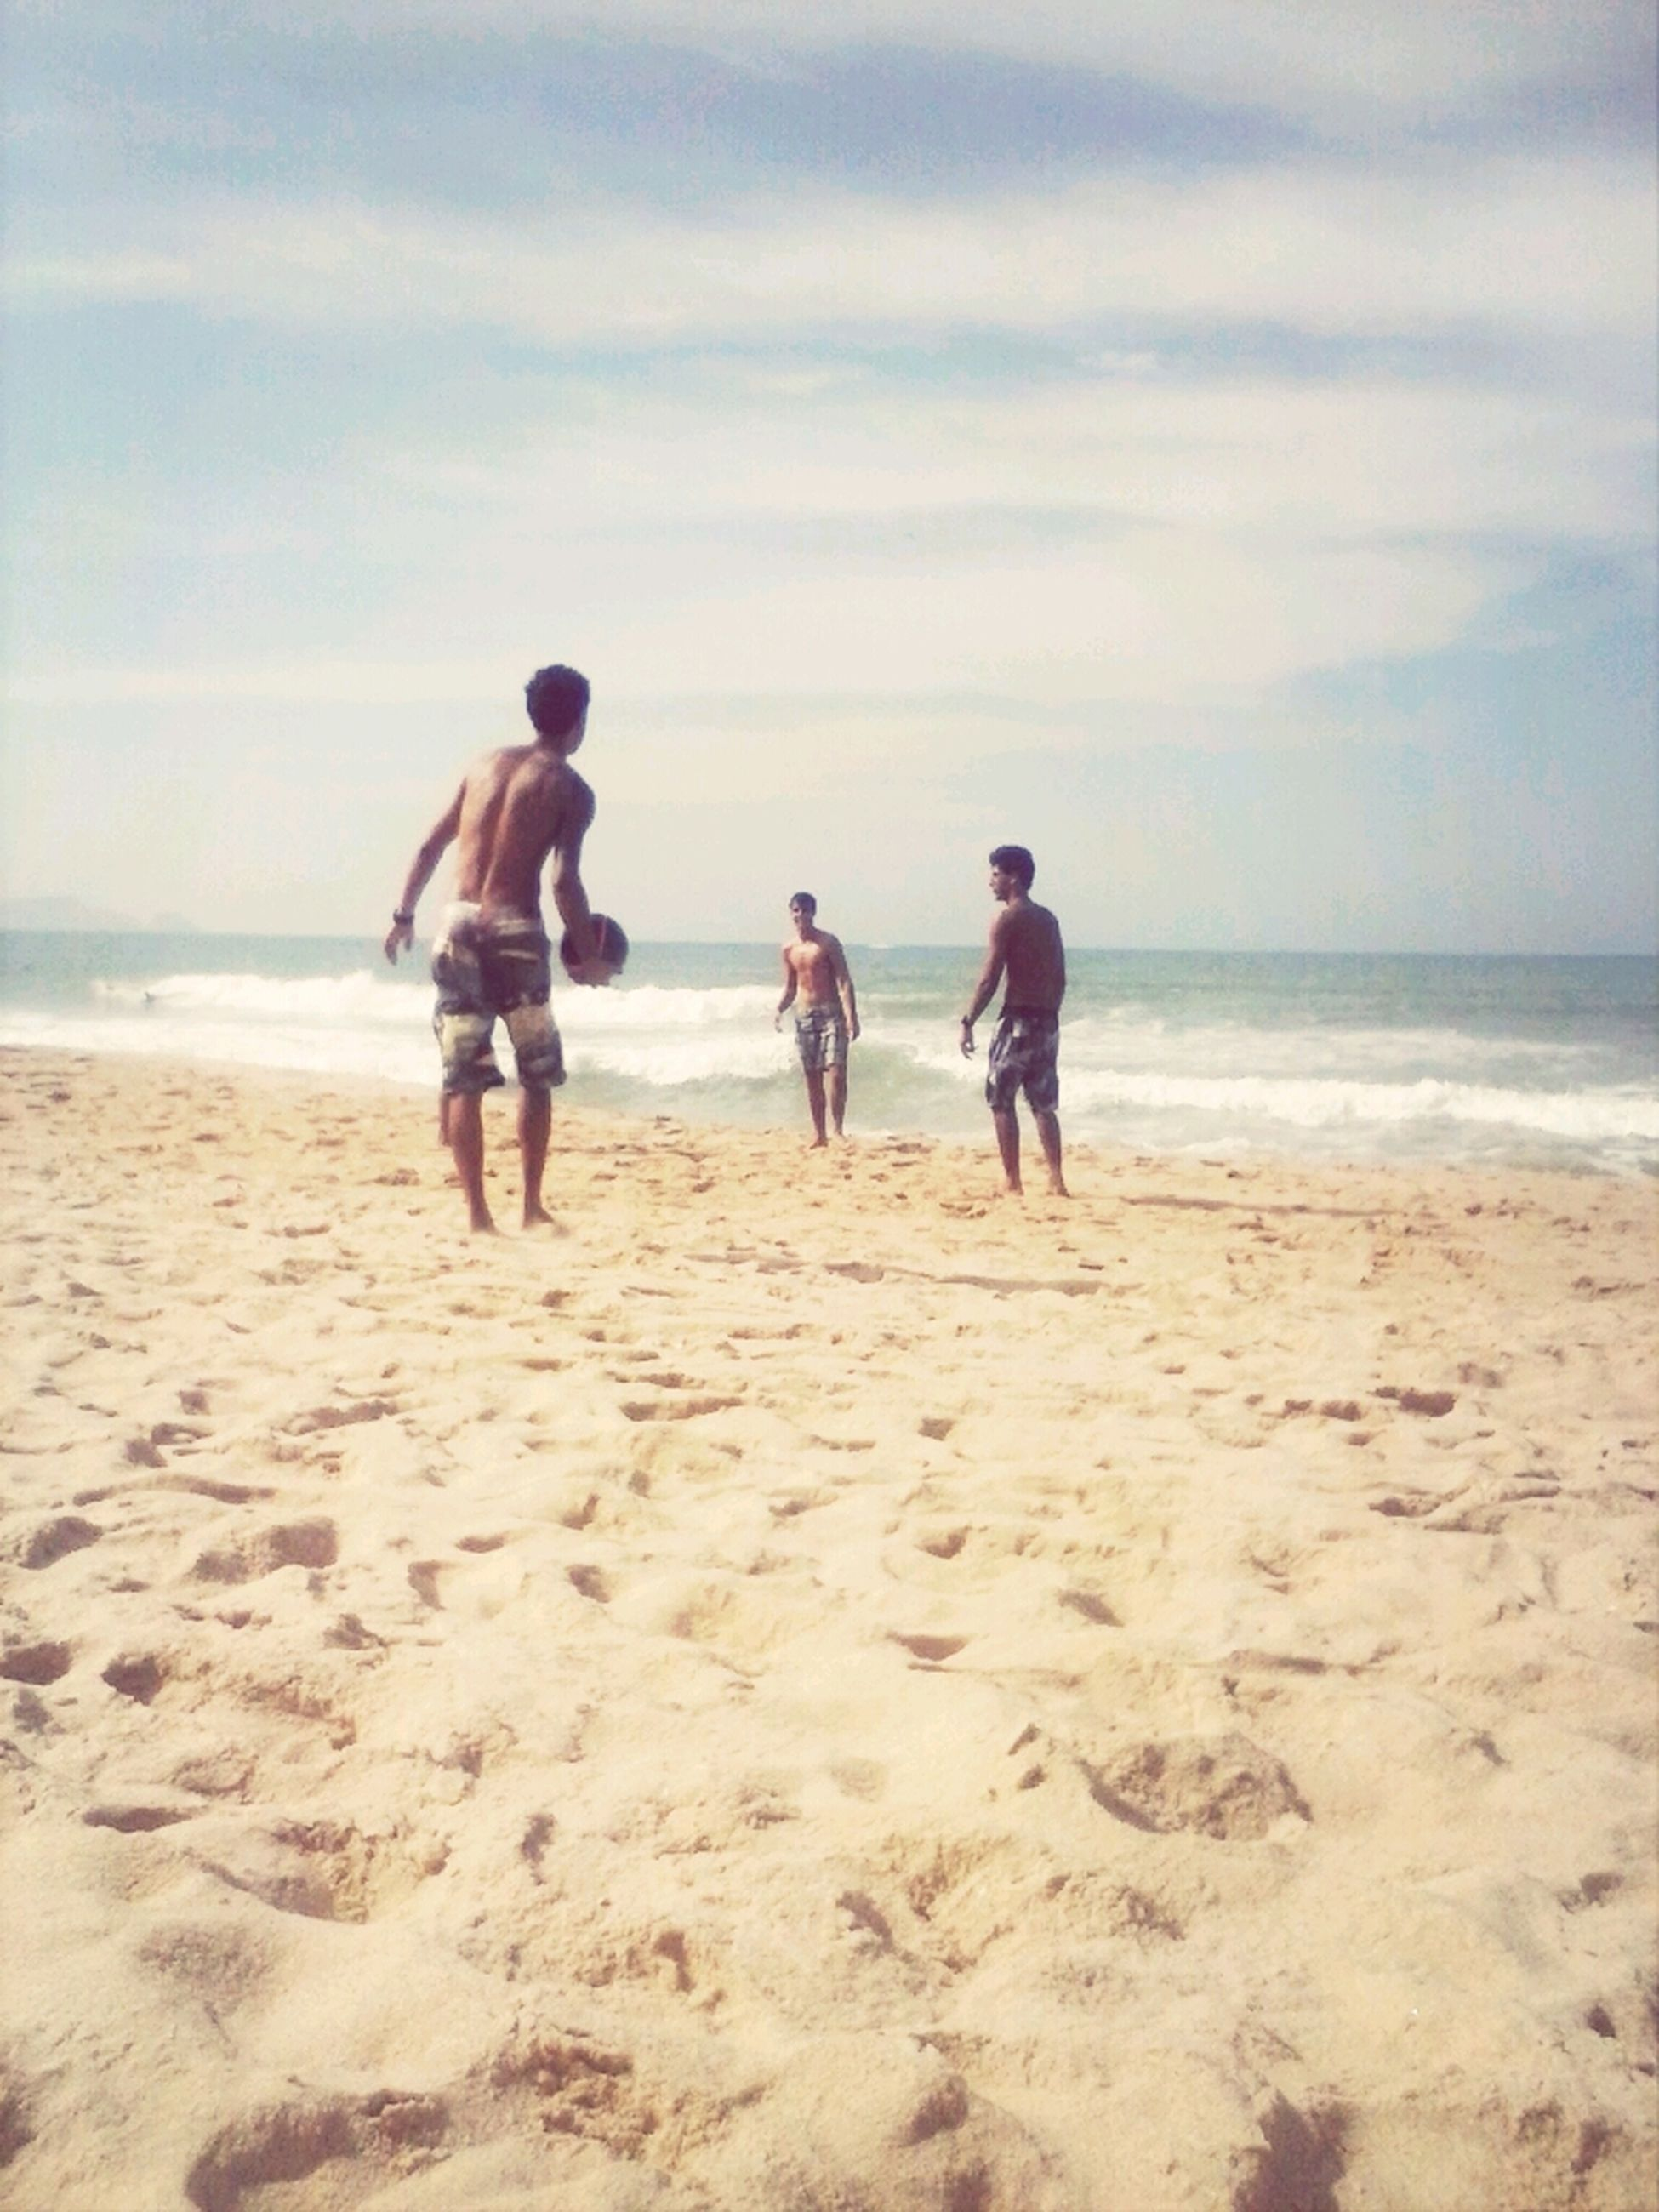 beach, sea, sand, horizon over water, shore, sky, lifestyles, leisure activity, full length, water, men, togetherness, vacations, person, walking, rear view, nature, bonding